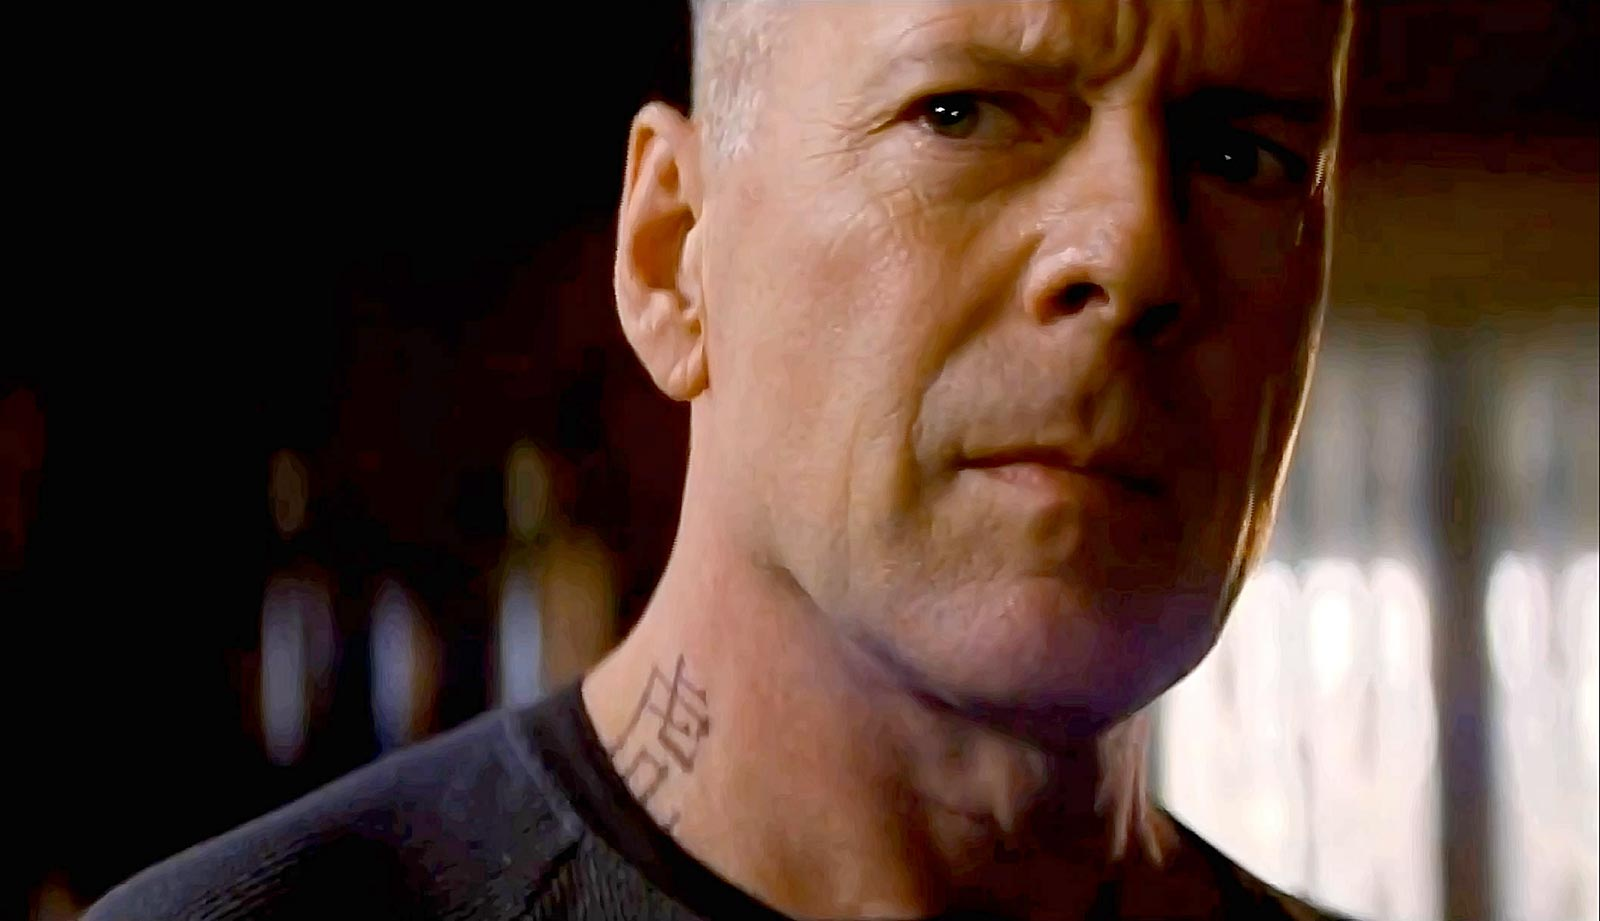 Bruce Willis as Old Joe